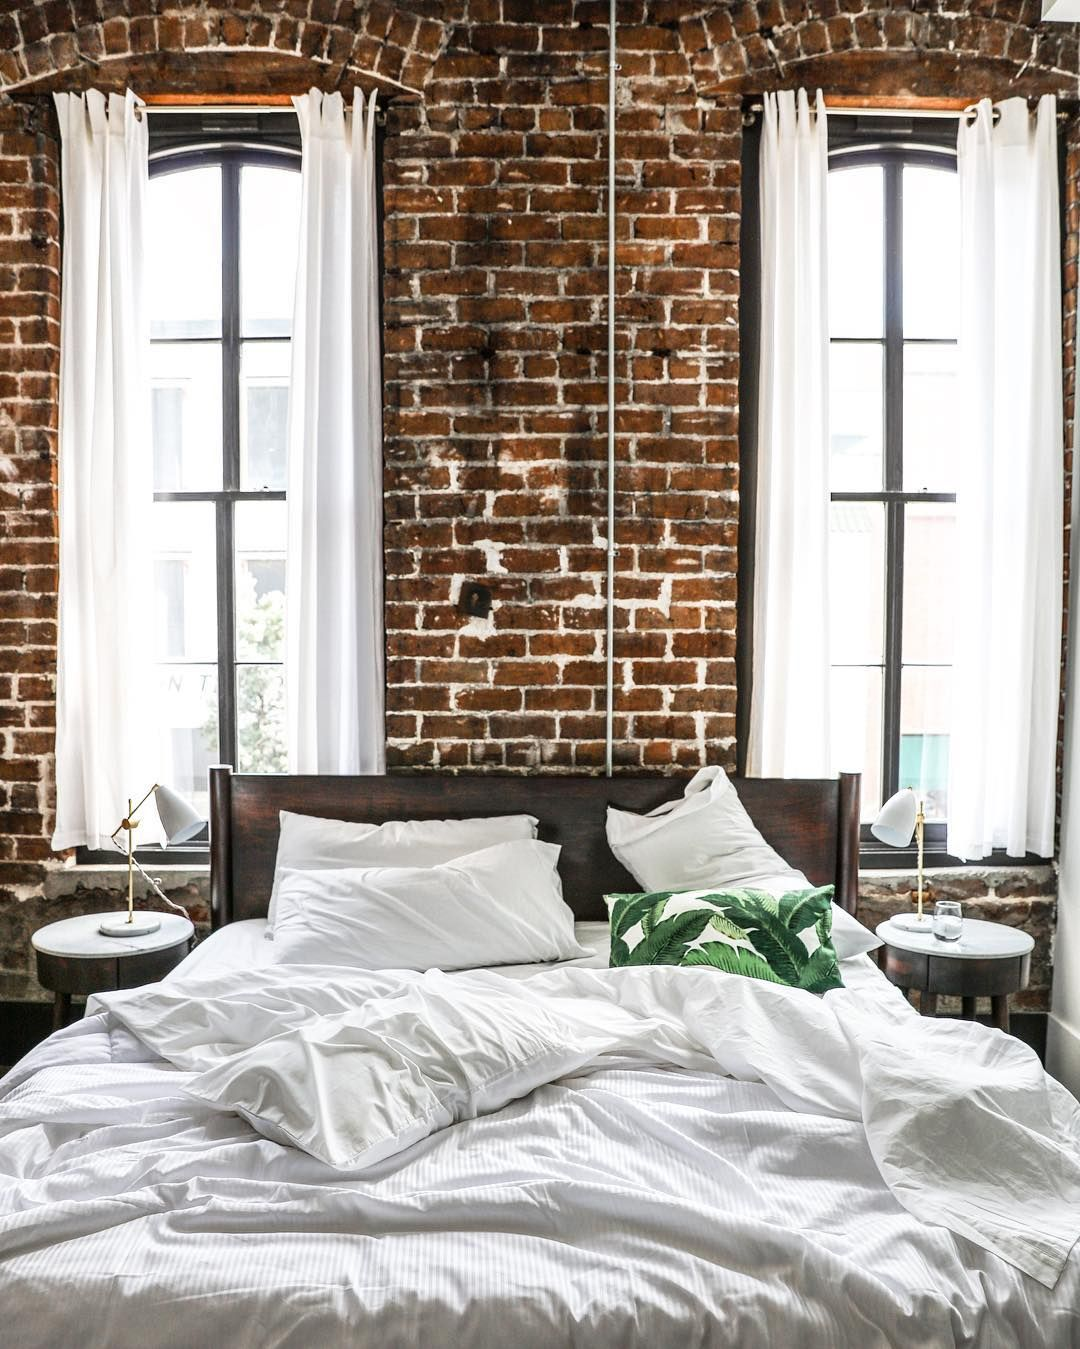 Loft bedroom curtains  Contemporary Loft Apartment Bedroom Design with Exposed Brick Walls